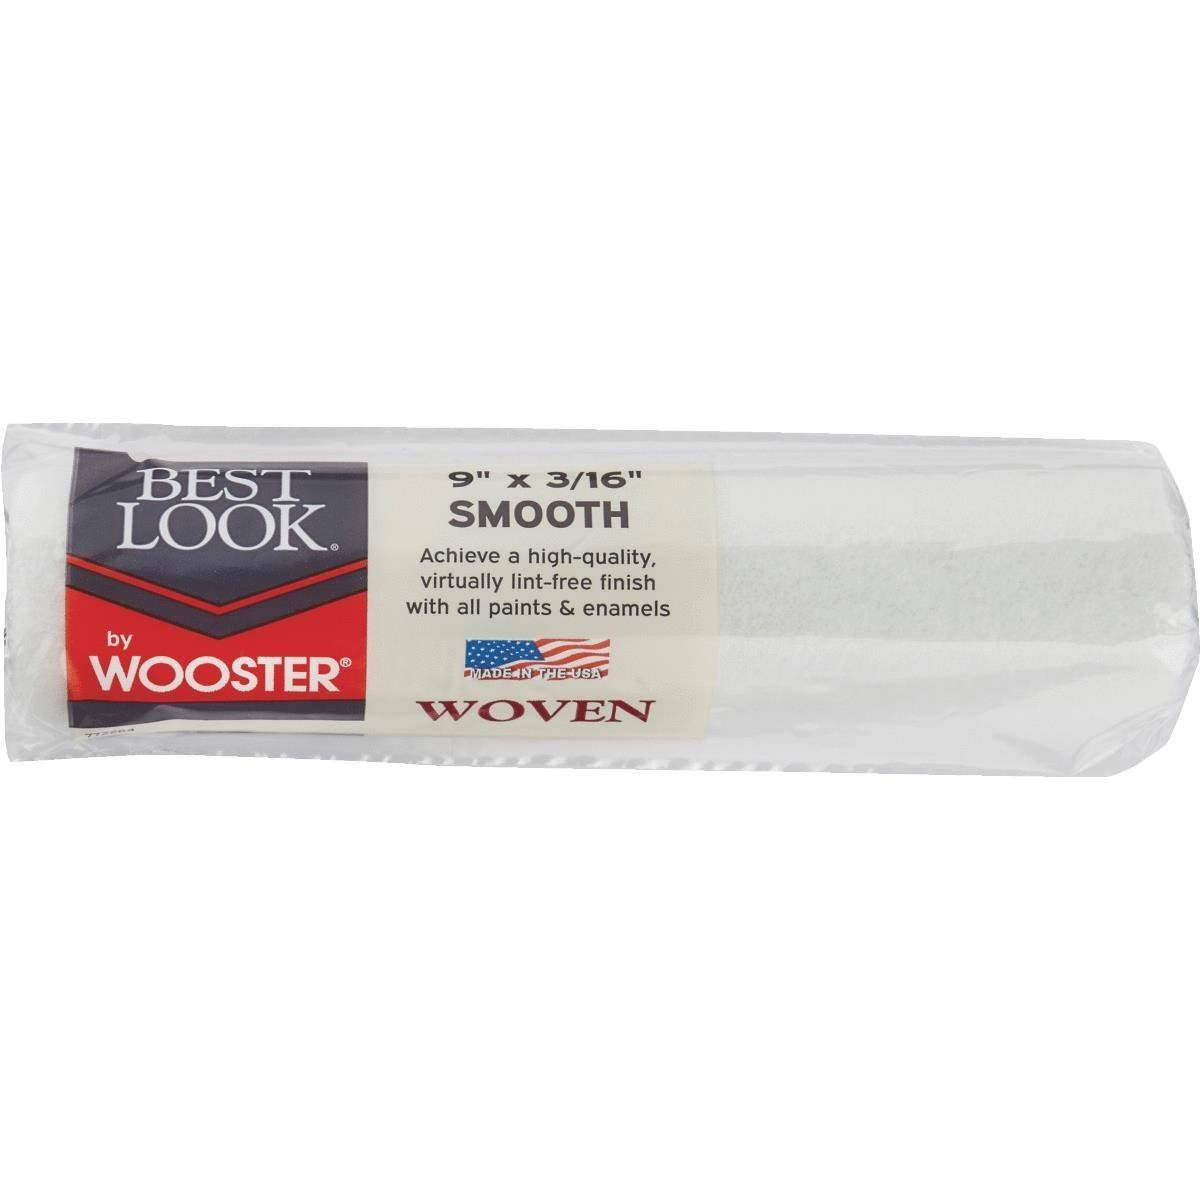 Best Look by Wooster Woven Fabric Roller Cover - DR461-9